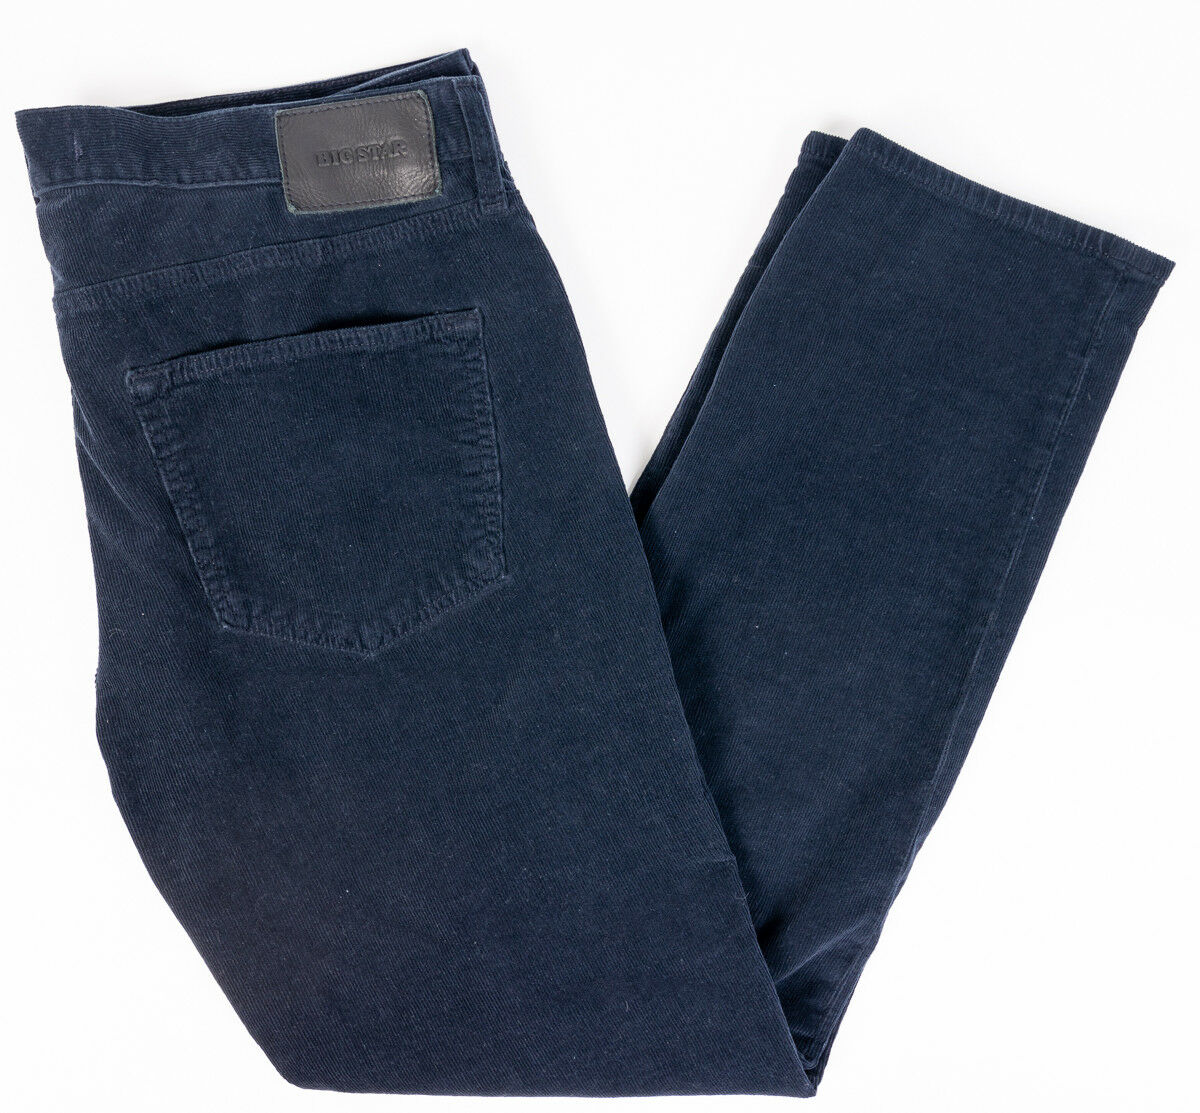 Big Star Jeans Divison Straight Mens Corduroy Pants Navy bluee Size 38R